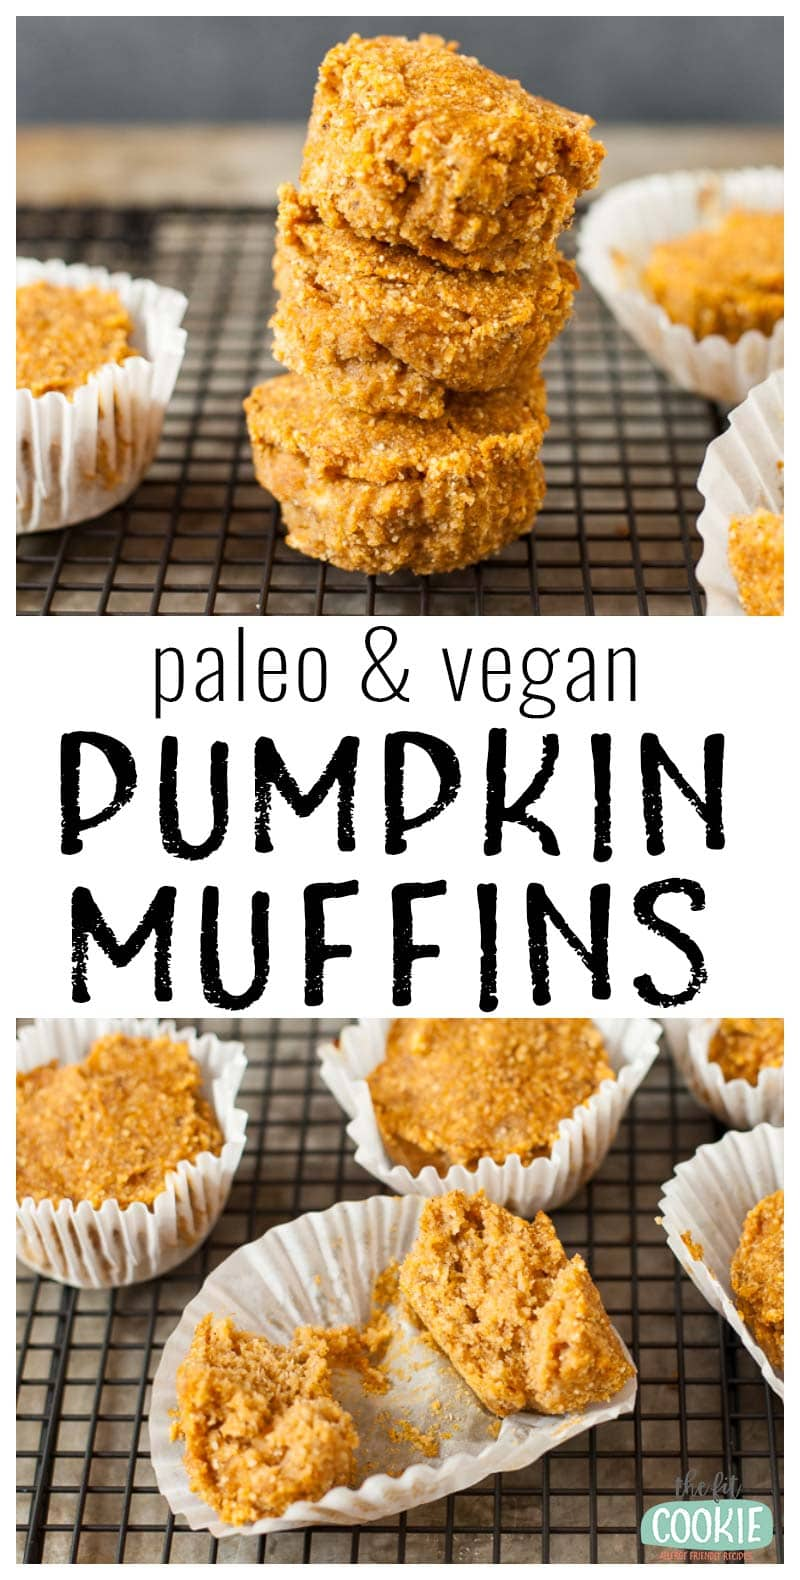 Easy Paleo Pumpkin Muffins (Egg Free) • The Fit Cookie